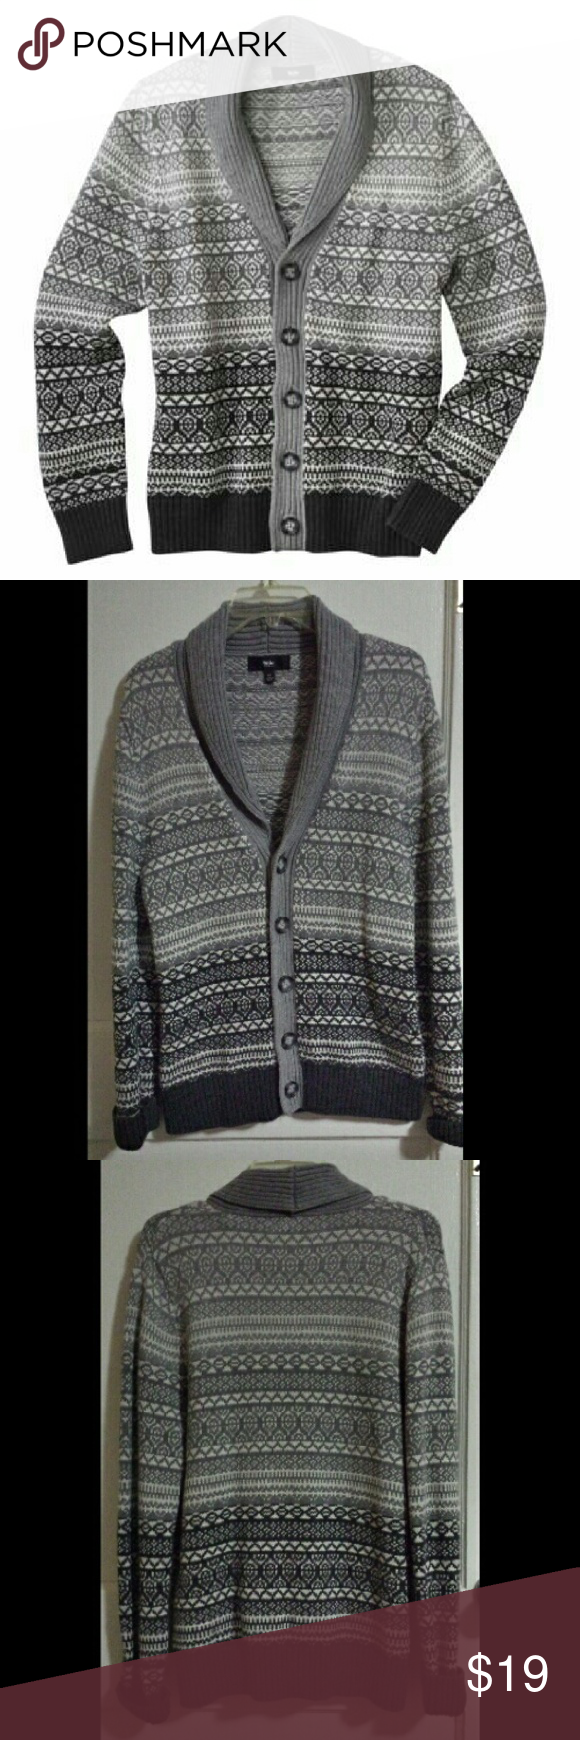 Shawl Collar Cardigan sweater Black, gray and white cardigan ...